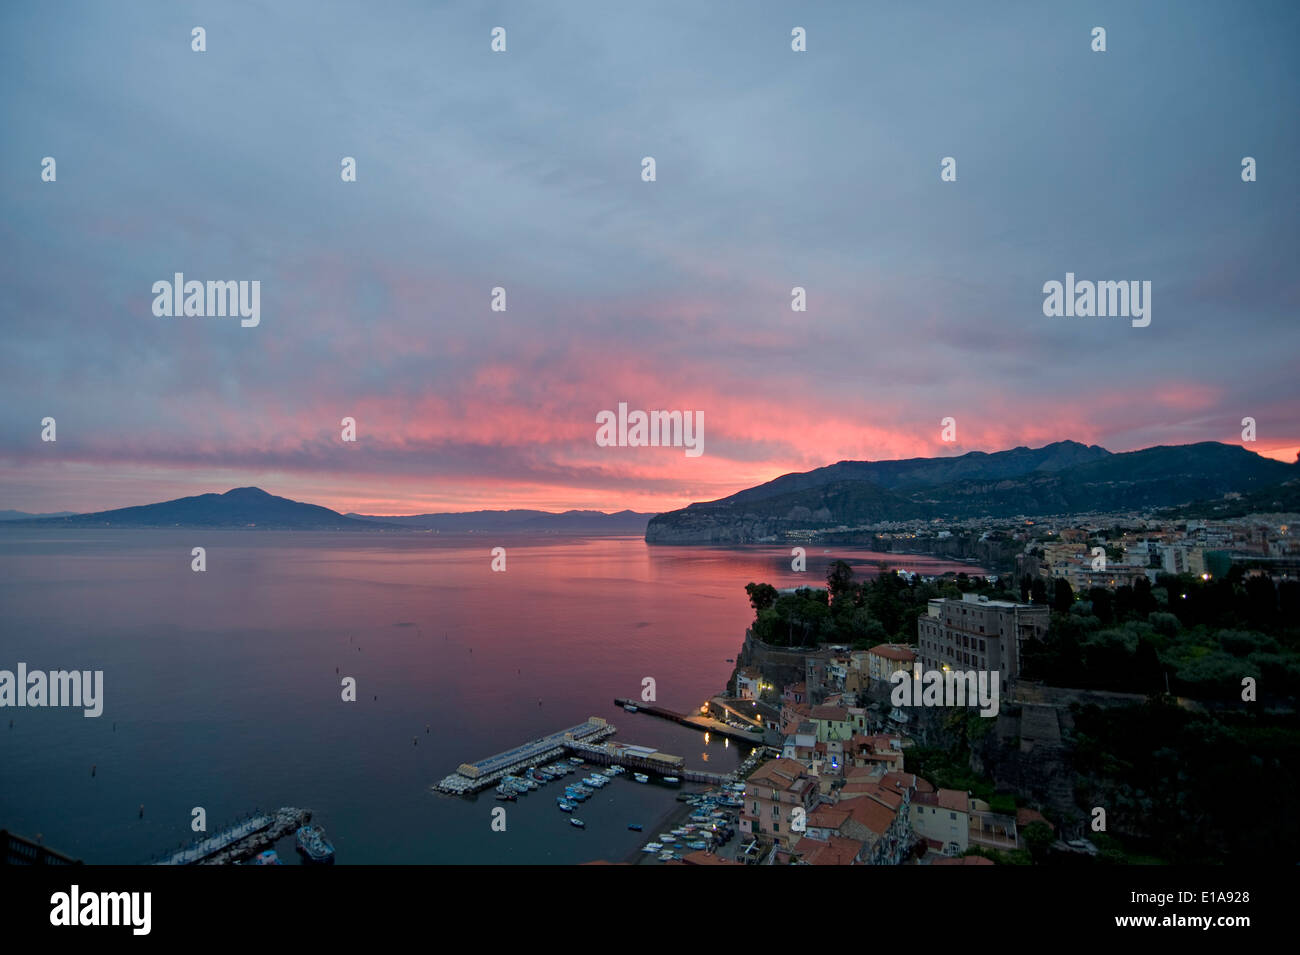 A fiery sunrise with red sky over Sorrento, the Bay of Naples and Mount Vesuvius, an active volcano, Italy - Stock Image